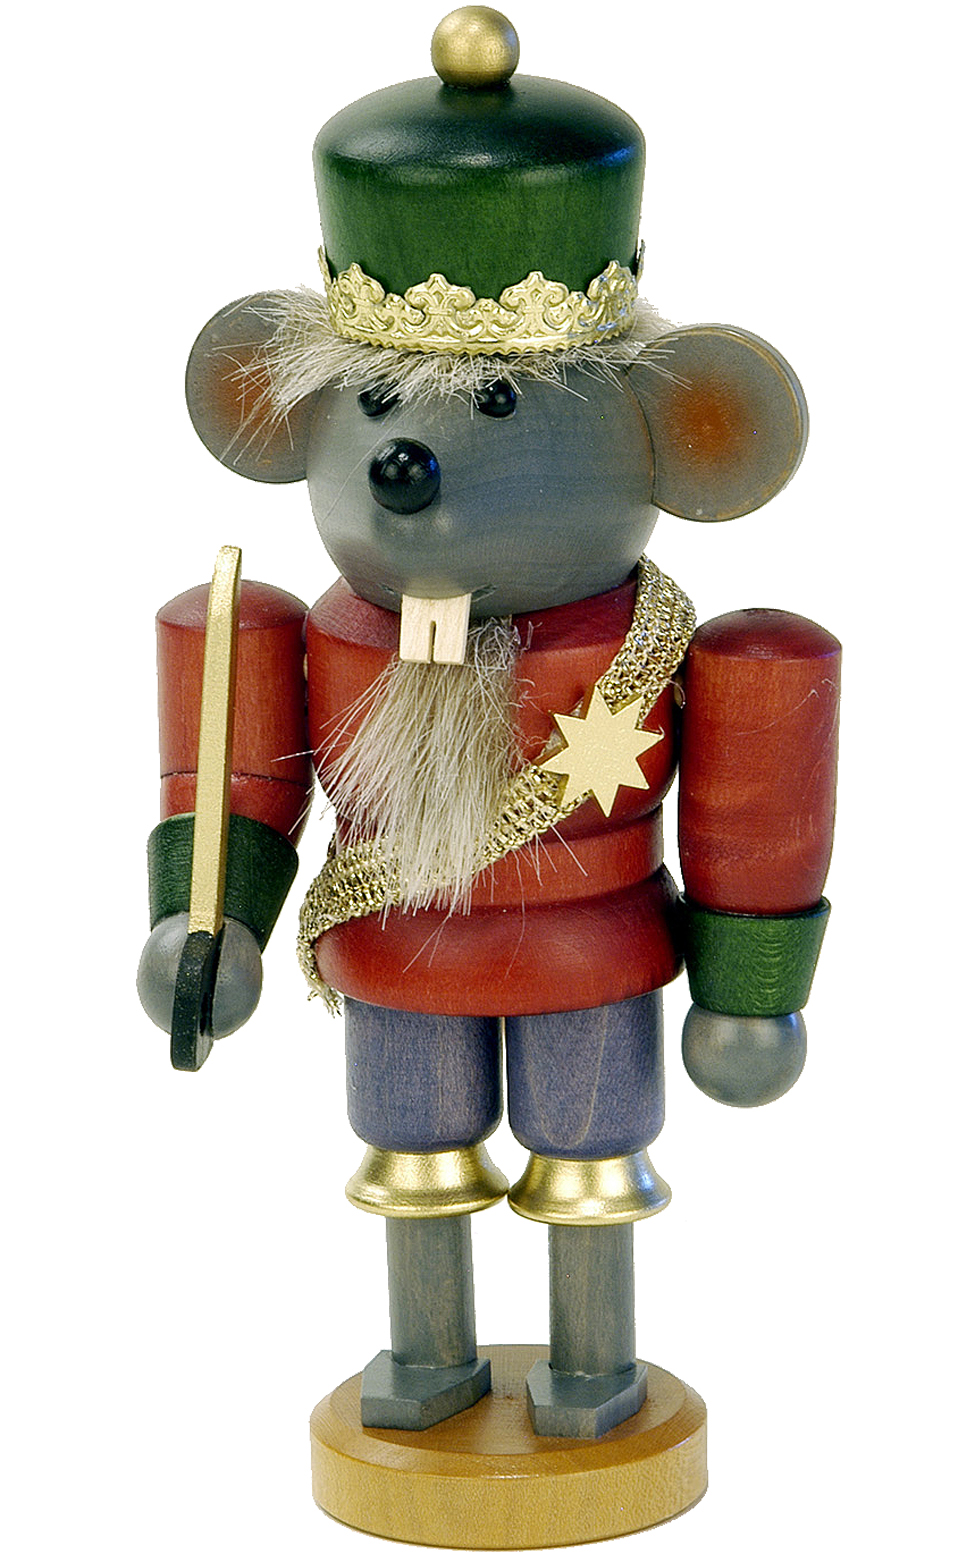 Nutcracker Mouseking - My German Christmas